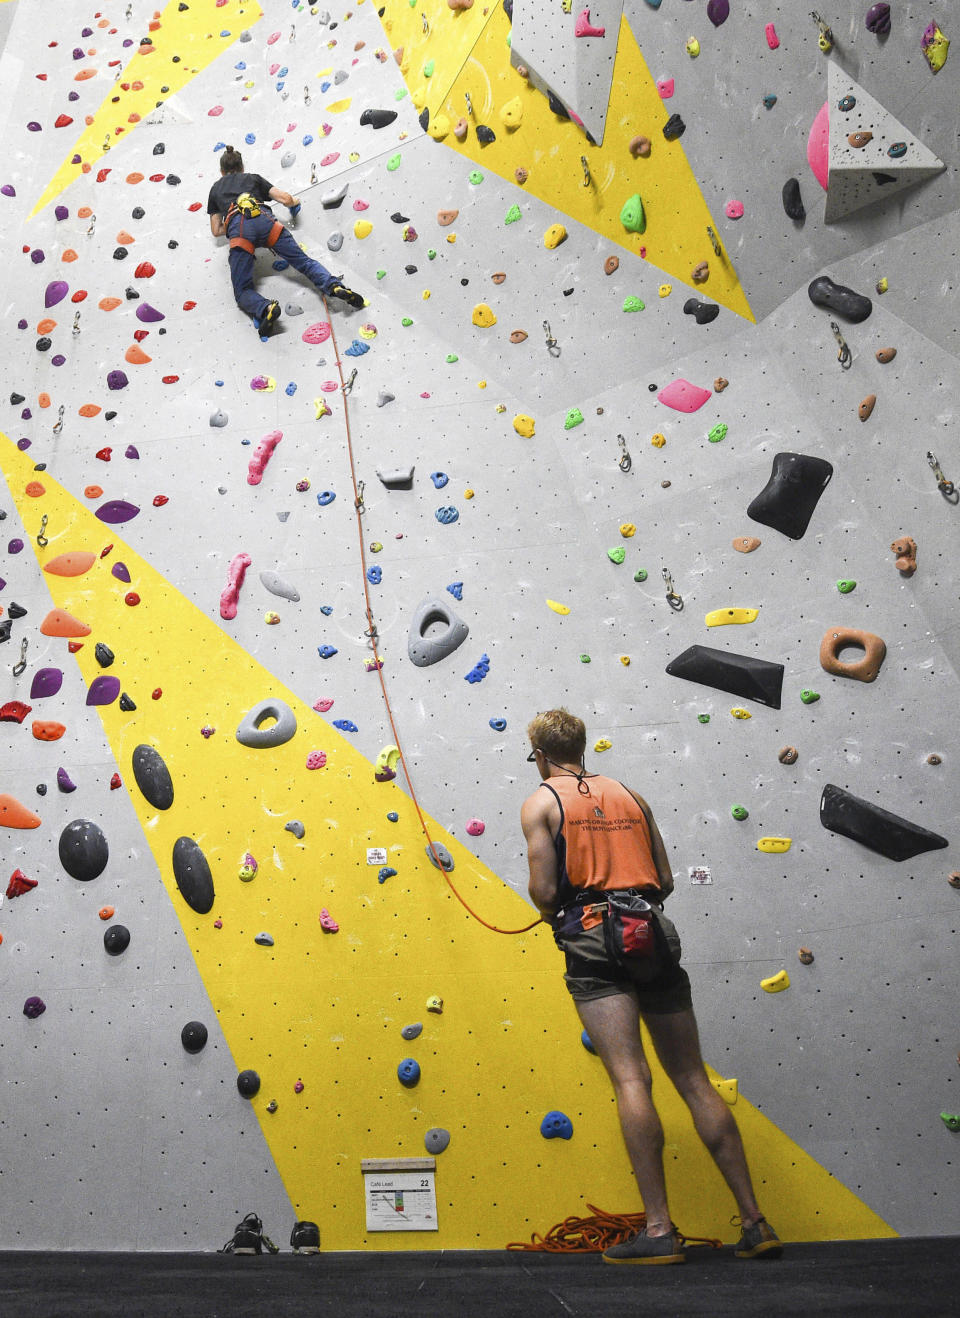 Climbers at The Castle Climbing Centre in London, as lockdown restrictions are eased to allow indoor gyms to restart activities Saturday July 25, 2020. Indoor gyms, swimming pools and sports facilities can reopen as part of the latest easing of coronavirus lockdown measures in England Saturday. (Kirsty O'Connor/PA via AP)